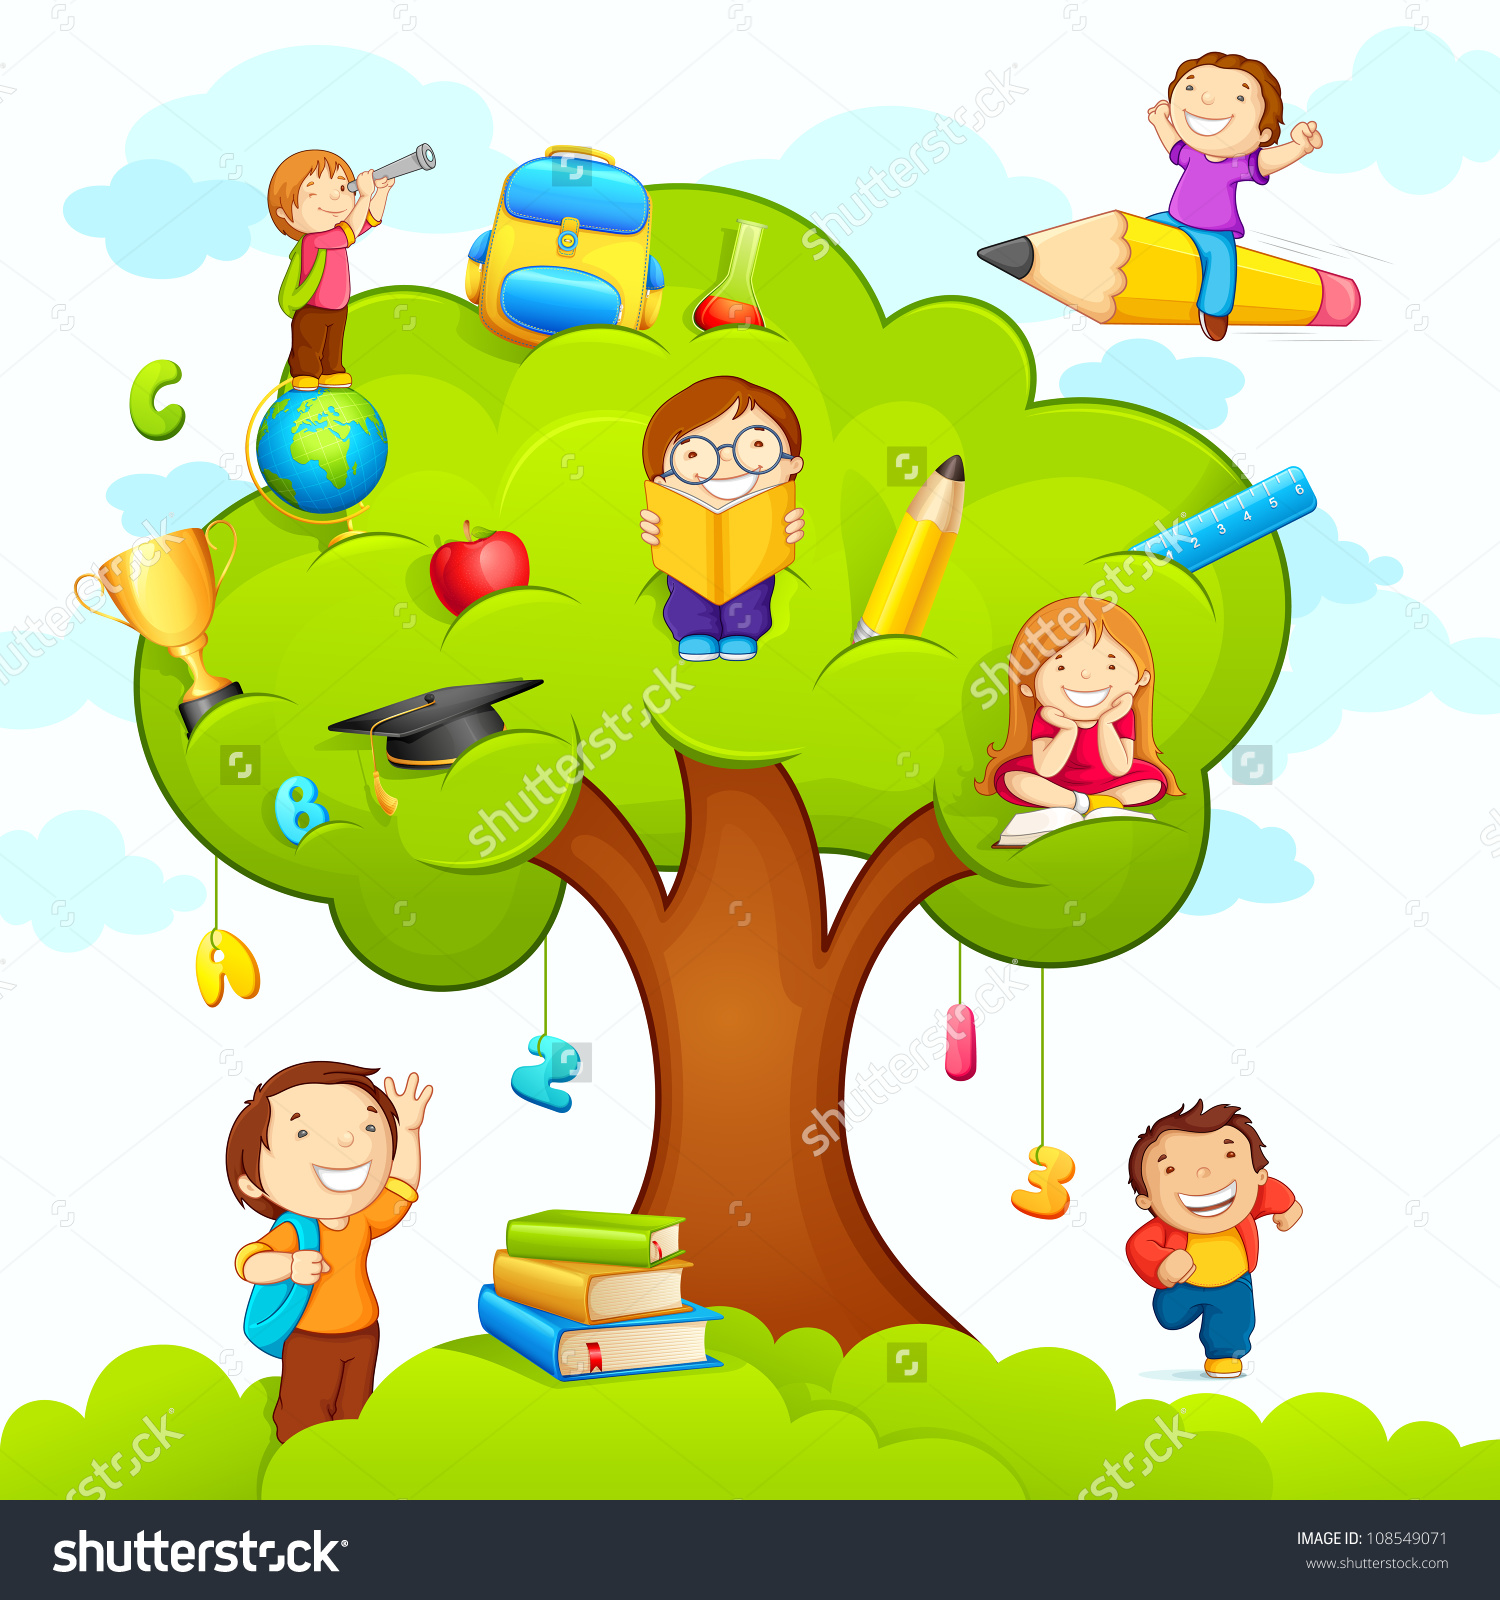 different color children education clipart - Clipground